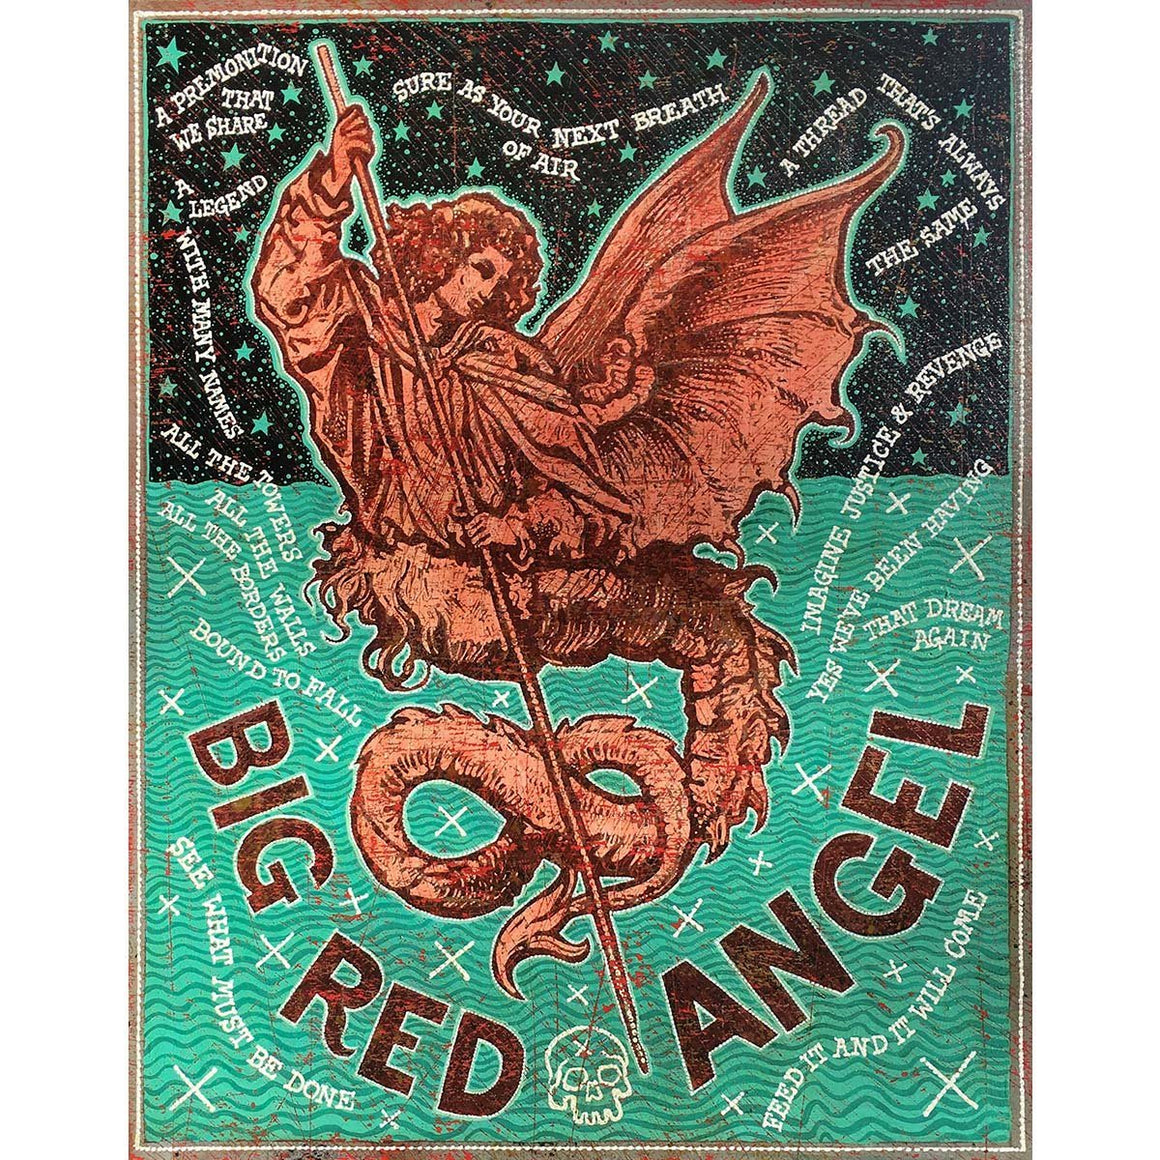 Big Red Angel - Jon Langford - Yard Dog Art